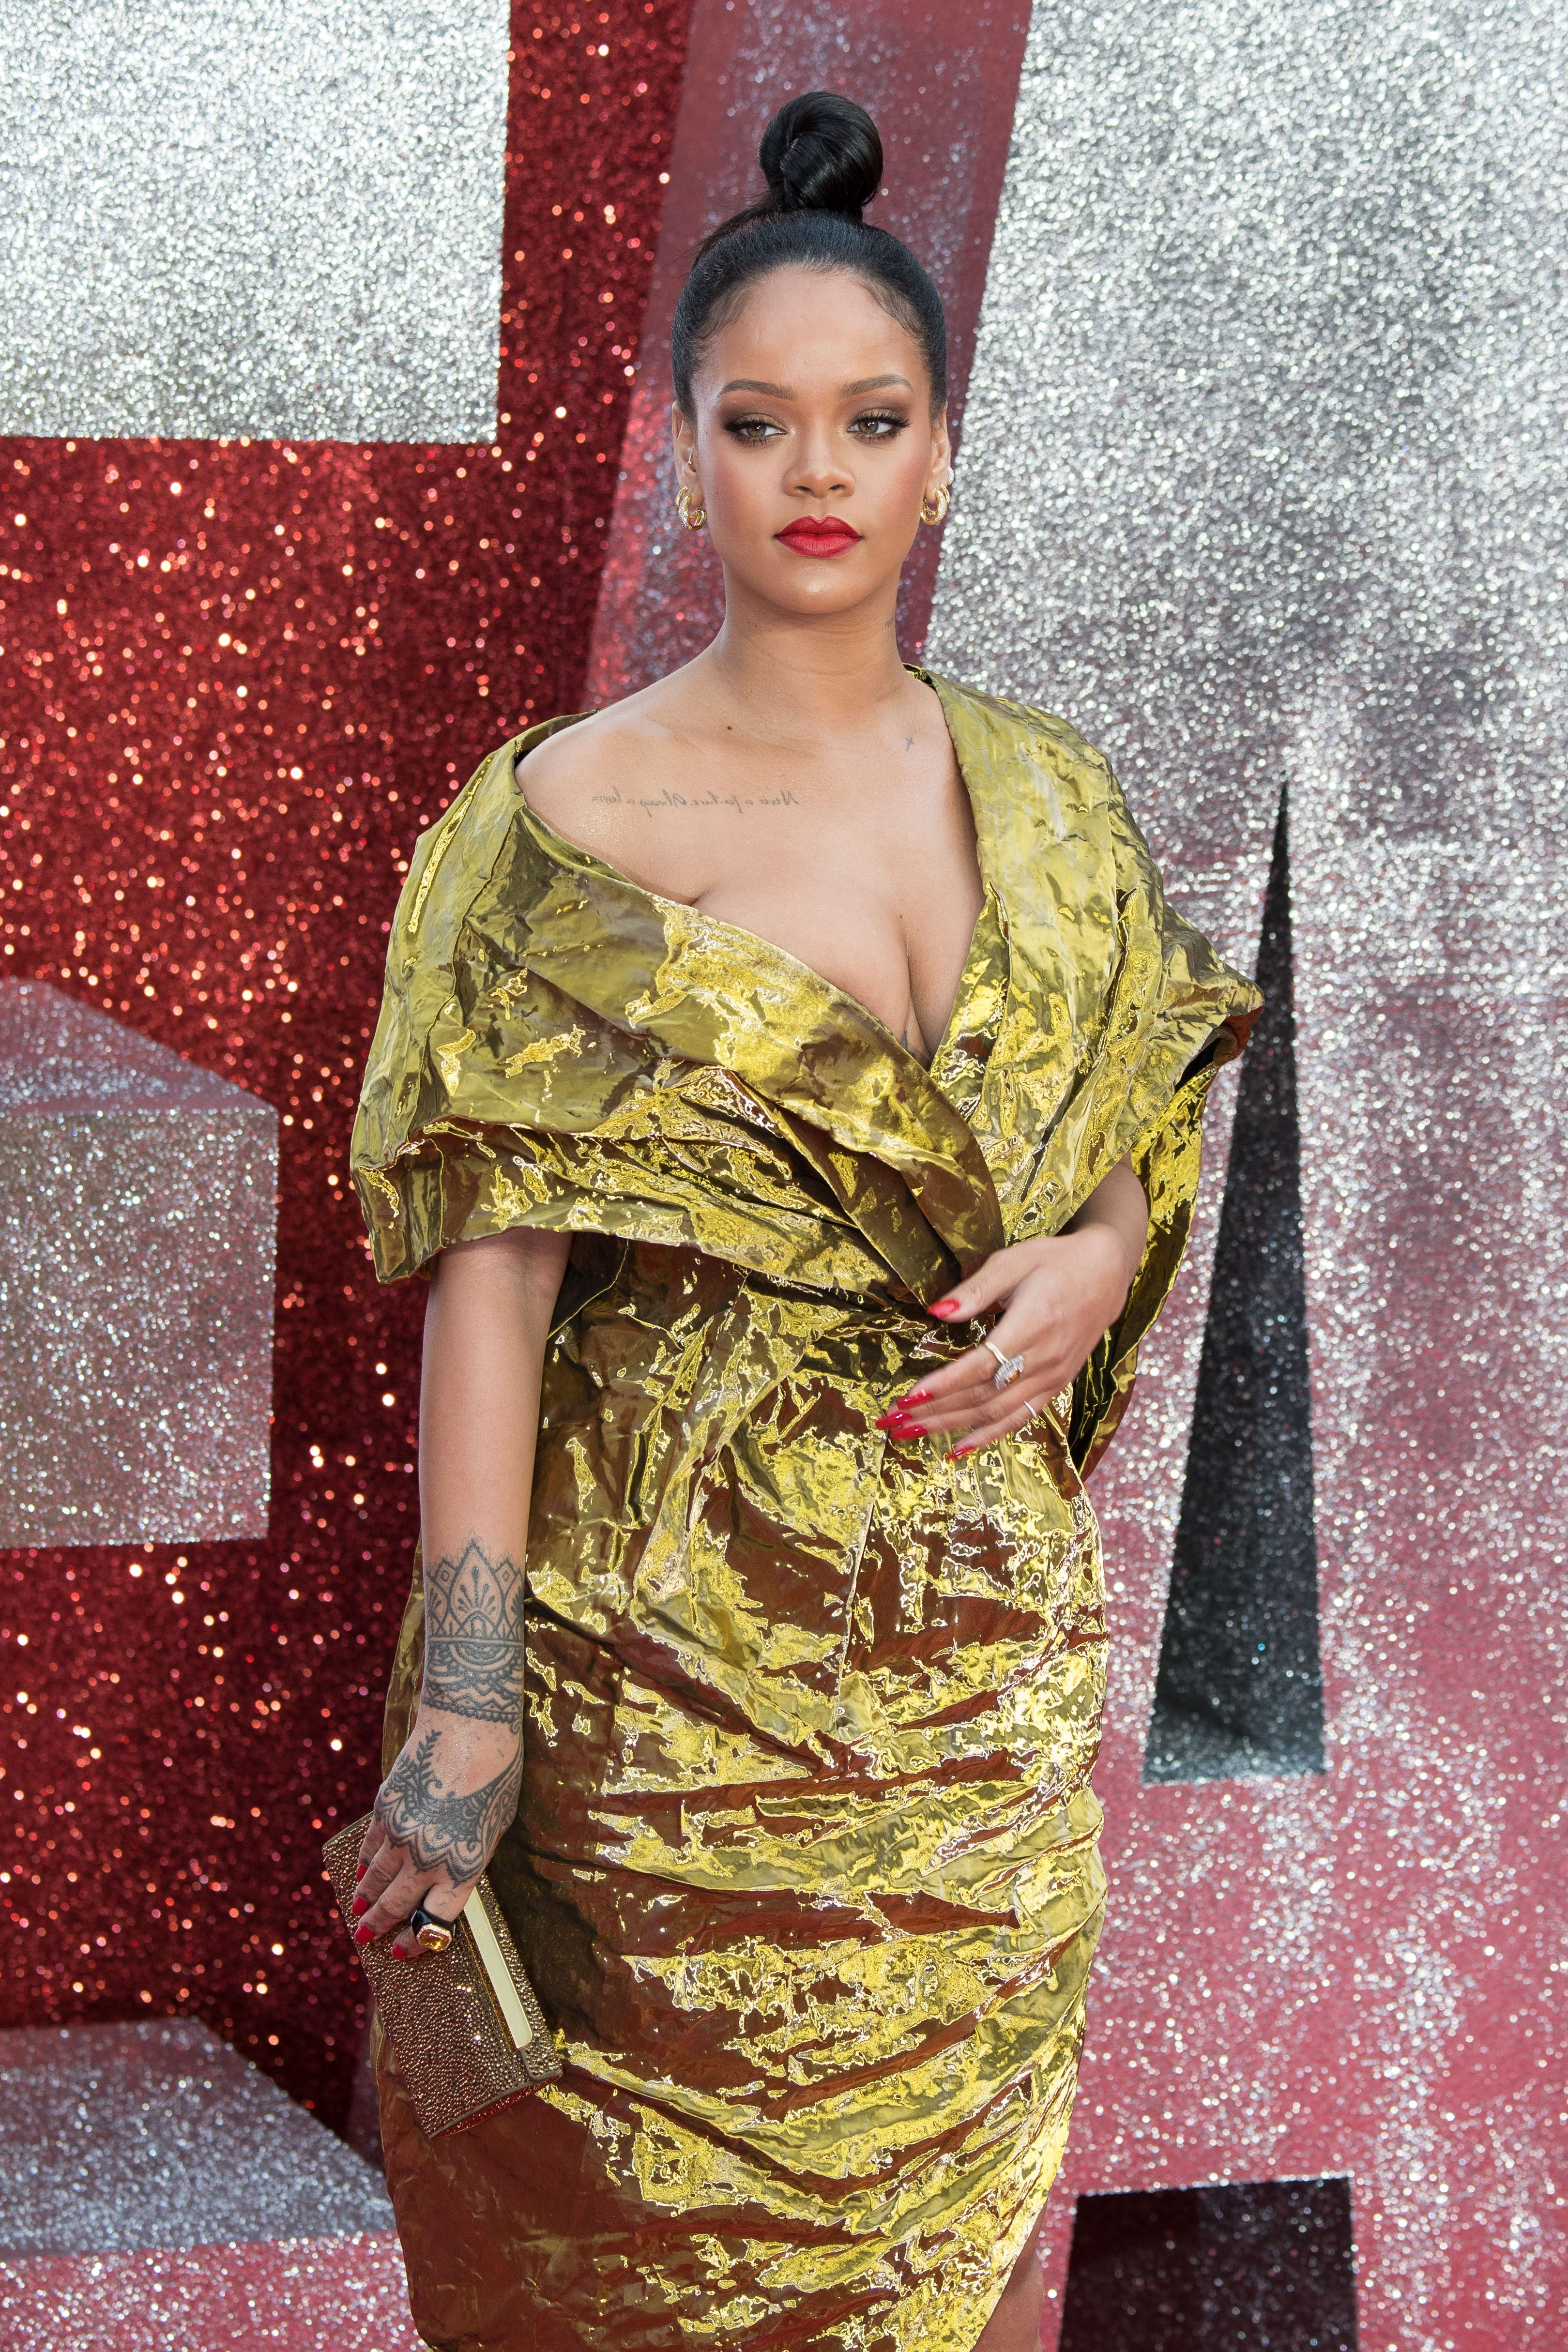 Rihanna responds to The Batman Poison Ivy casting rumours